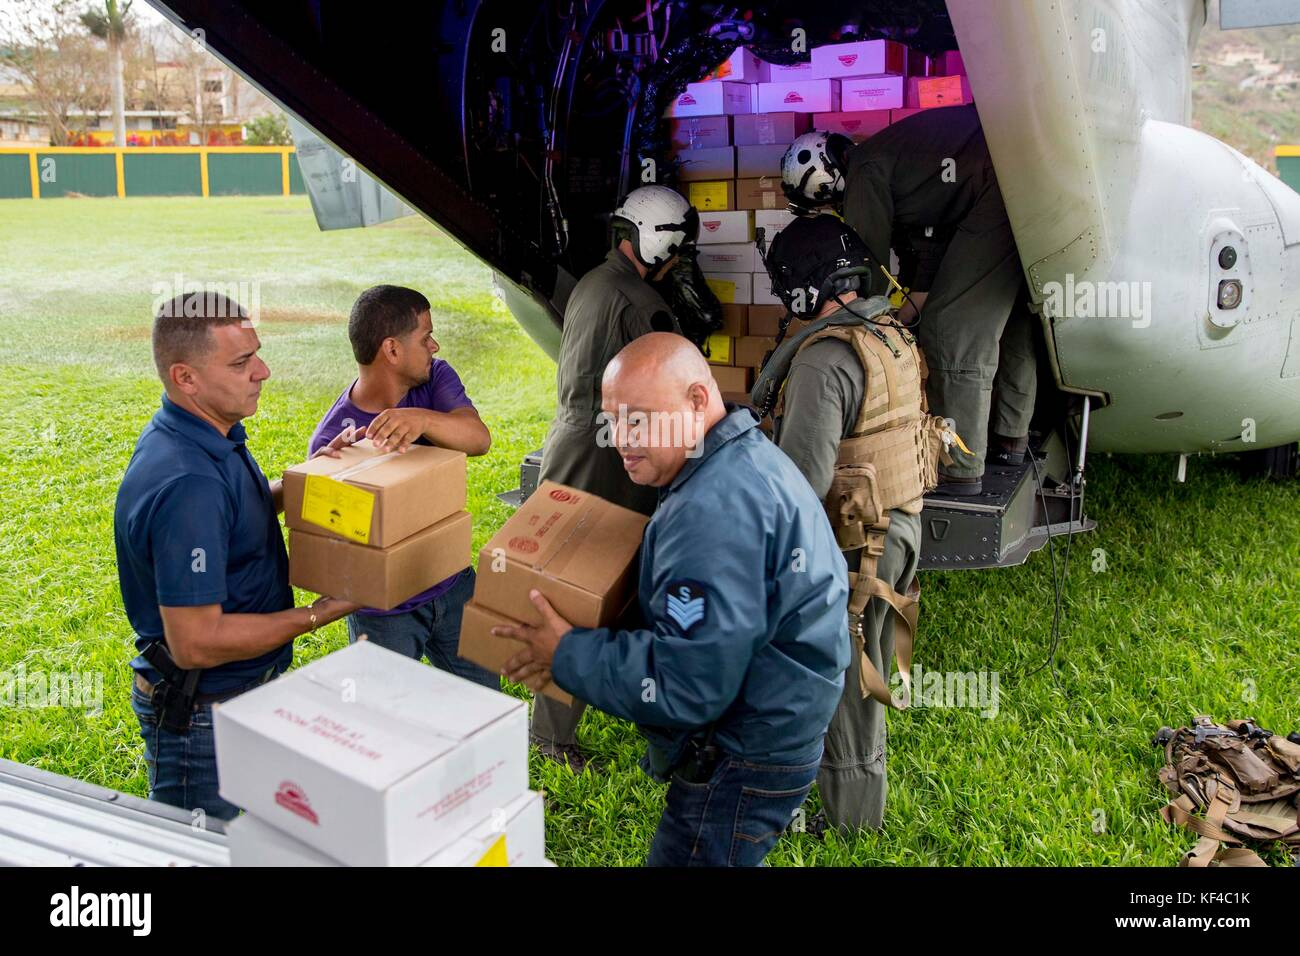 U.S. Marines and local volunteers unload emergency supplies from a U.S. Navy MV-22 Osprey aircraft during relief - Stock Image